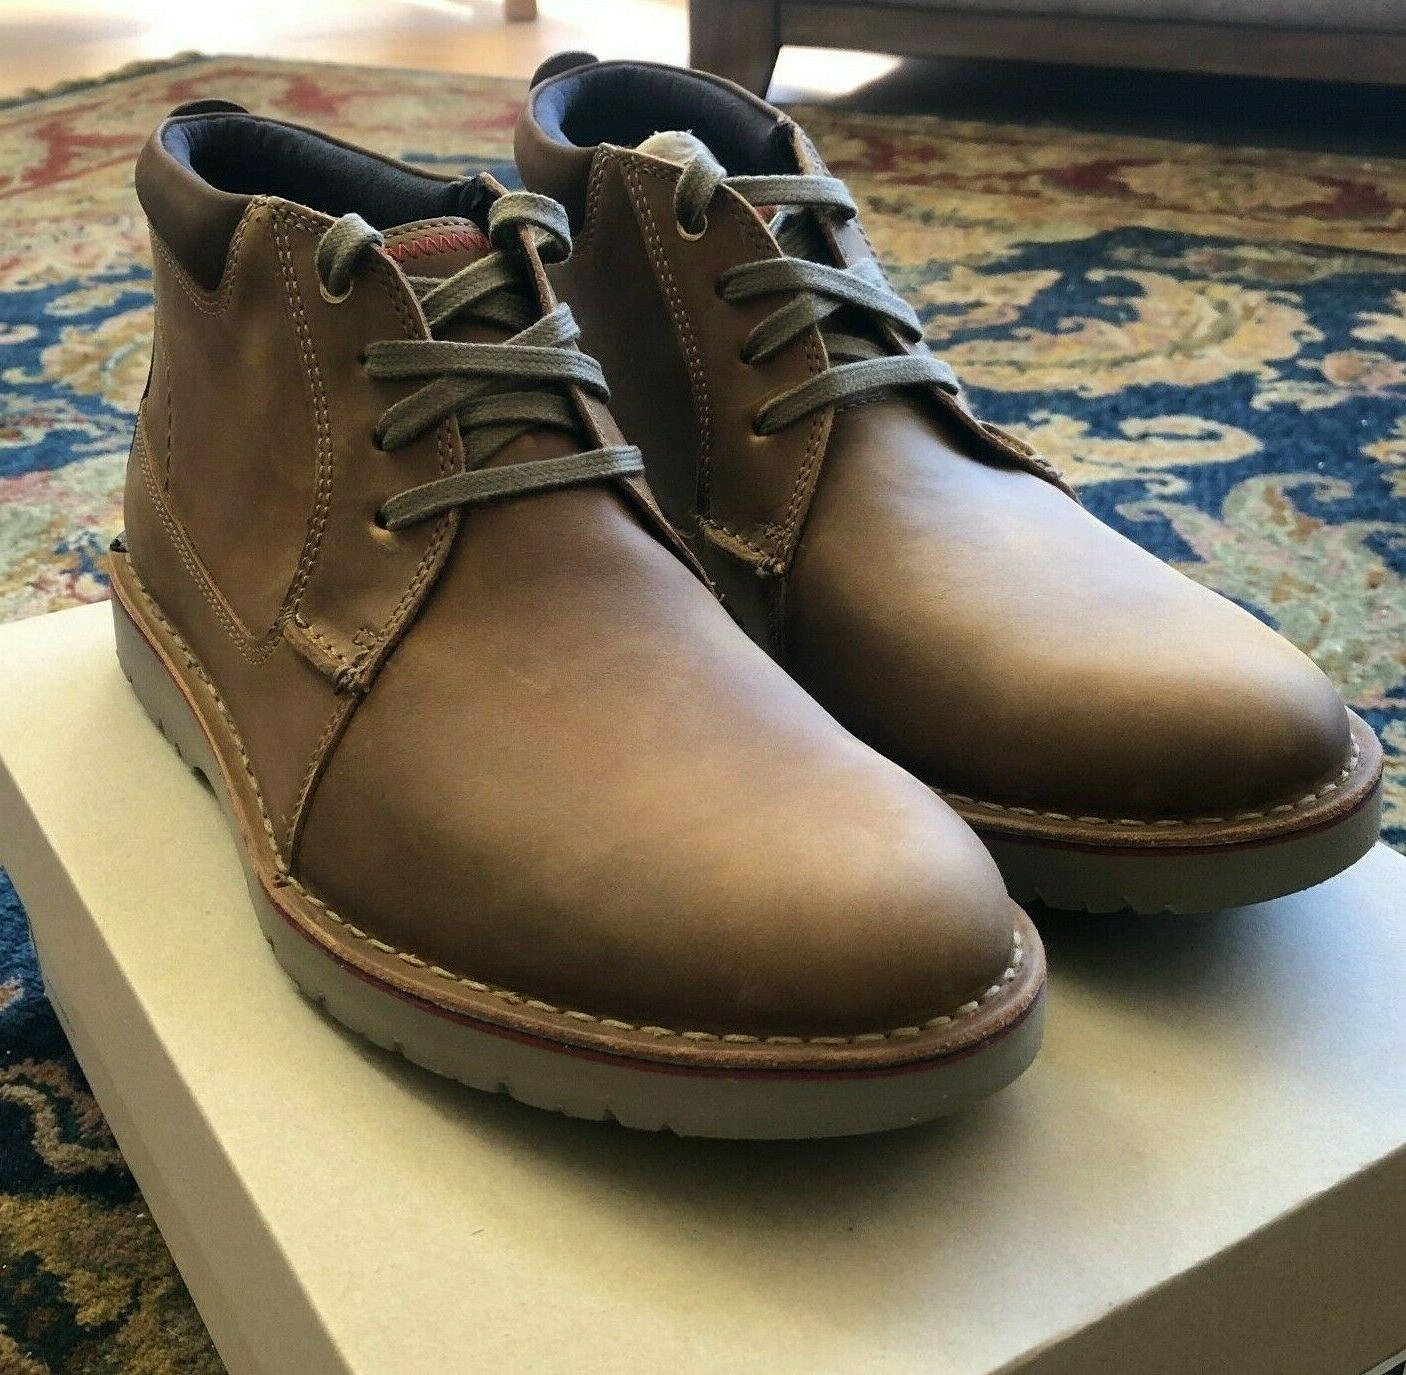 brand new mens shoes size 11